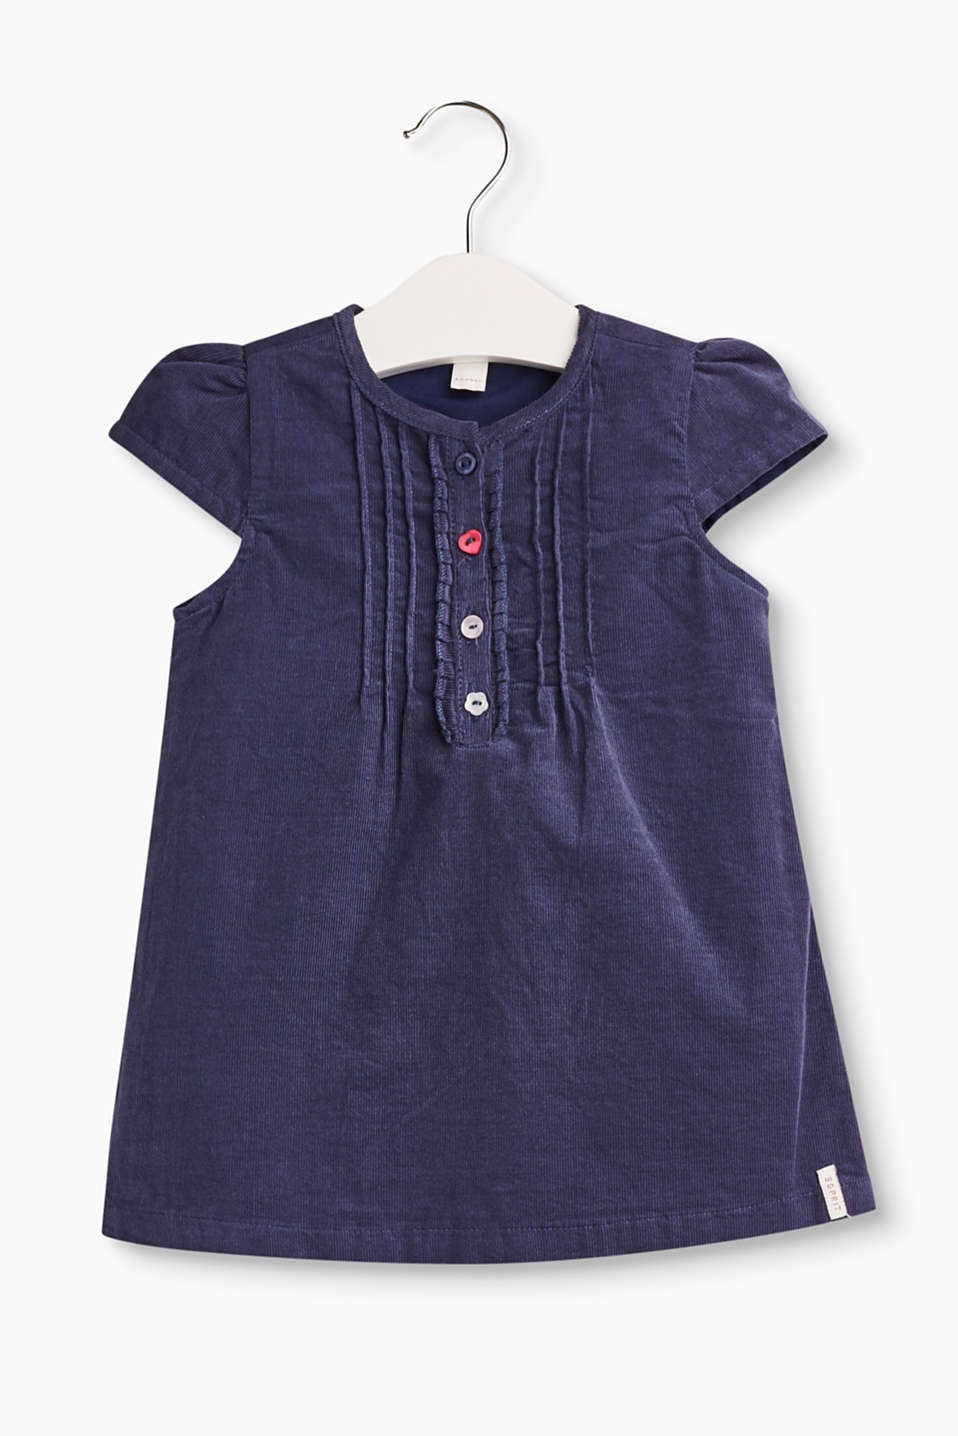 This is for Baby girls! Deze leuke jurk van corduroy is een must.